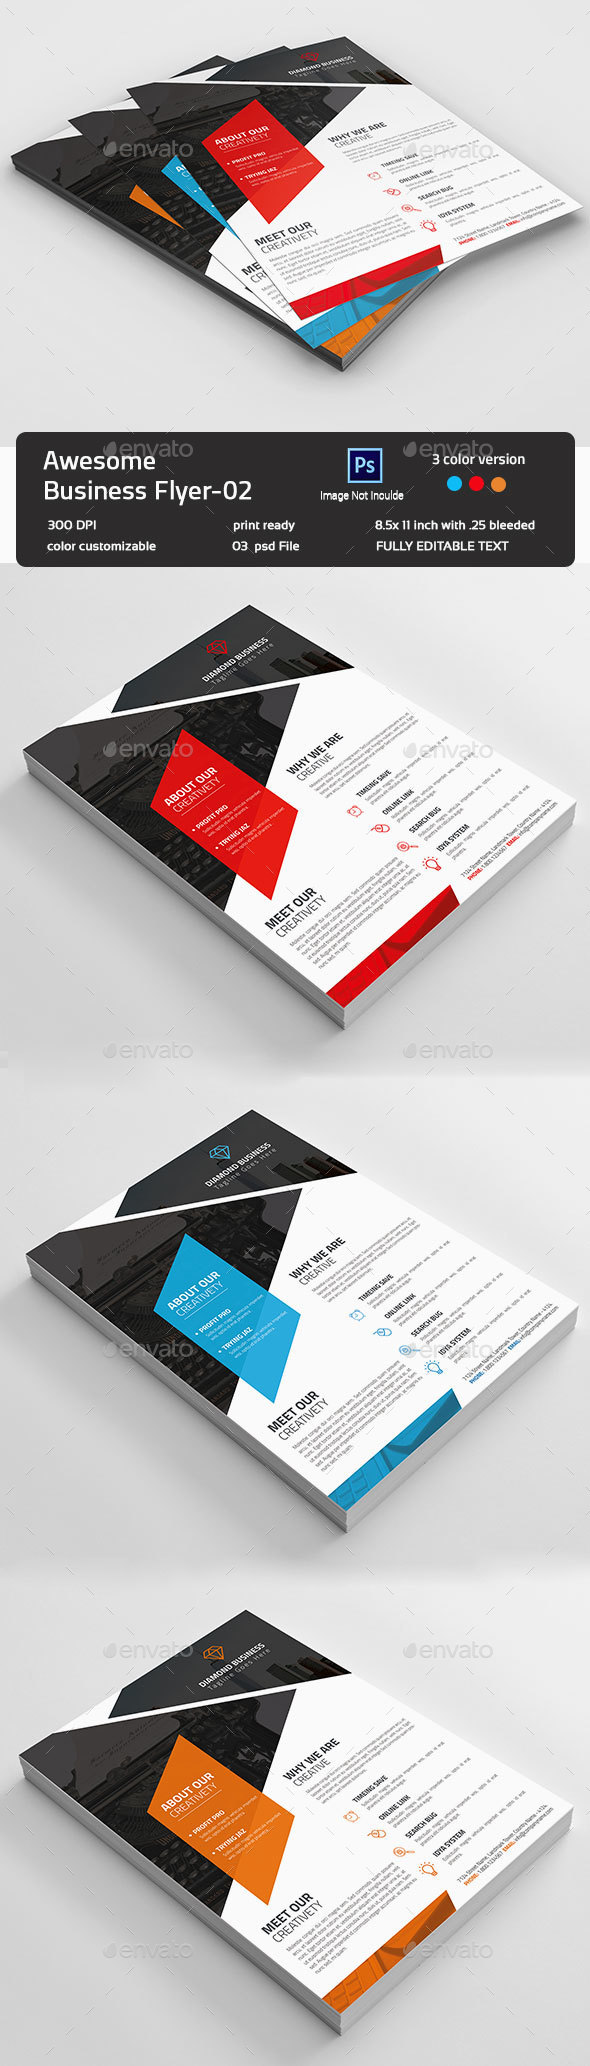 Awesome Business Flyer-02  - Flyers Print Templates